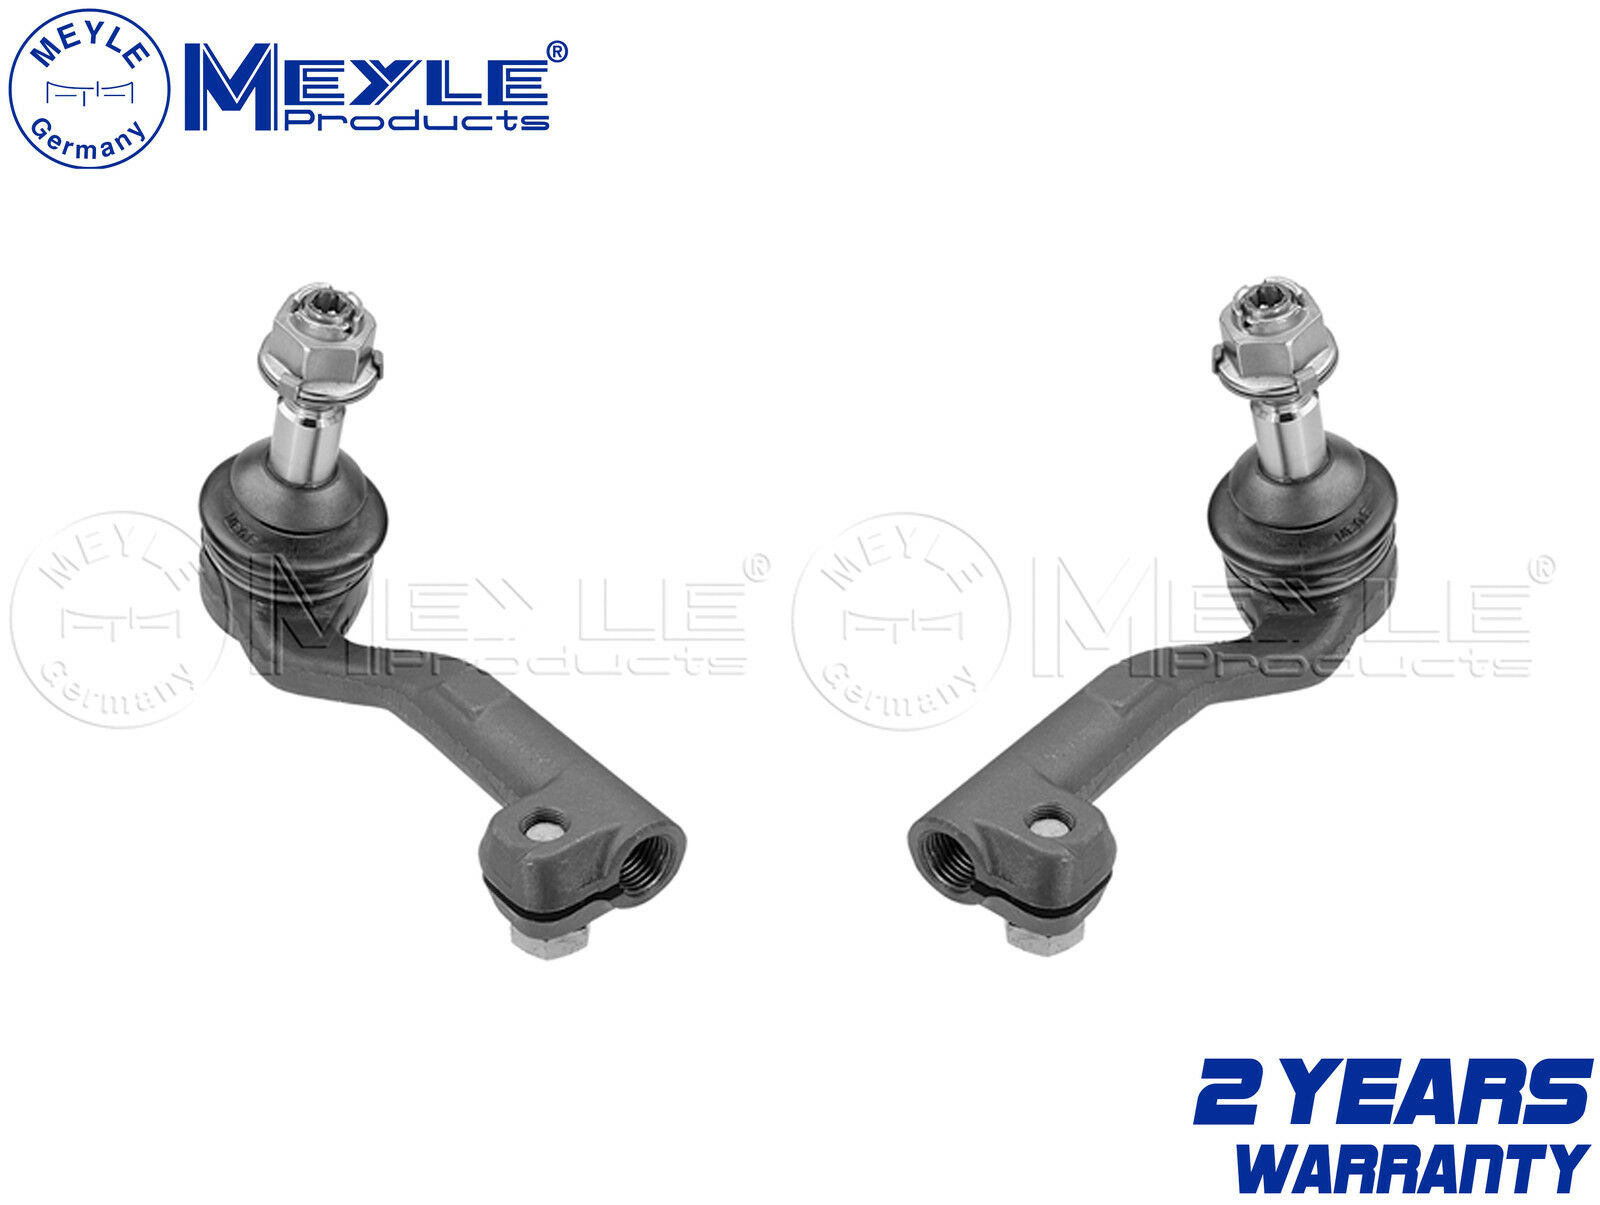 FRONT AXLE RIGHT OUTER STEERING TRACK TIE ROD END FOR BMW 3 SERIES F30 F31 2011